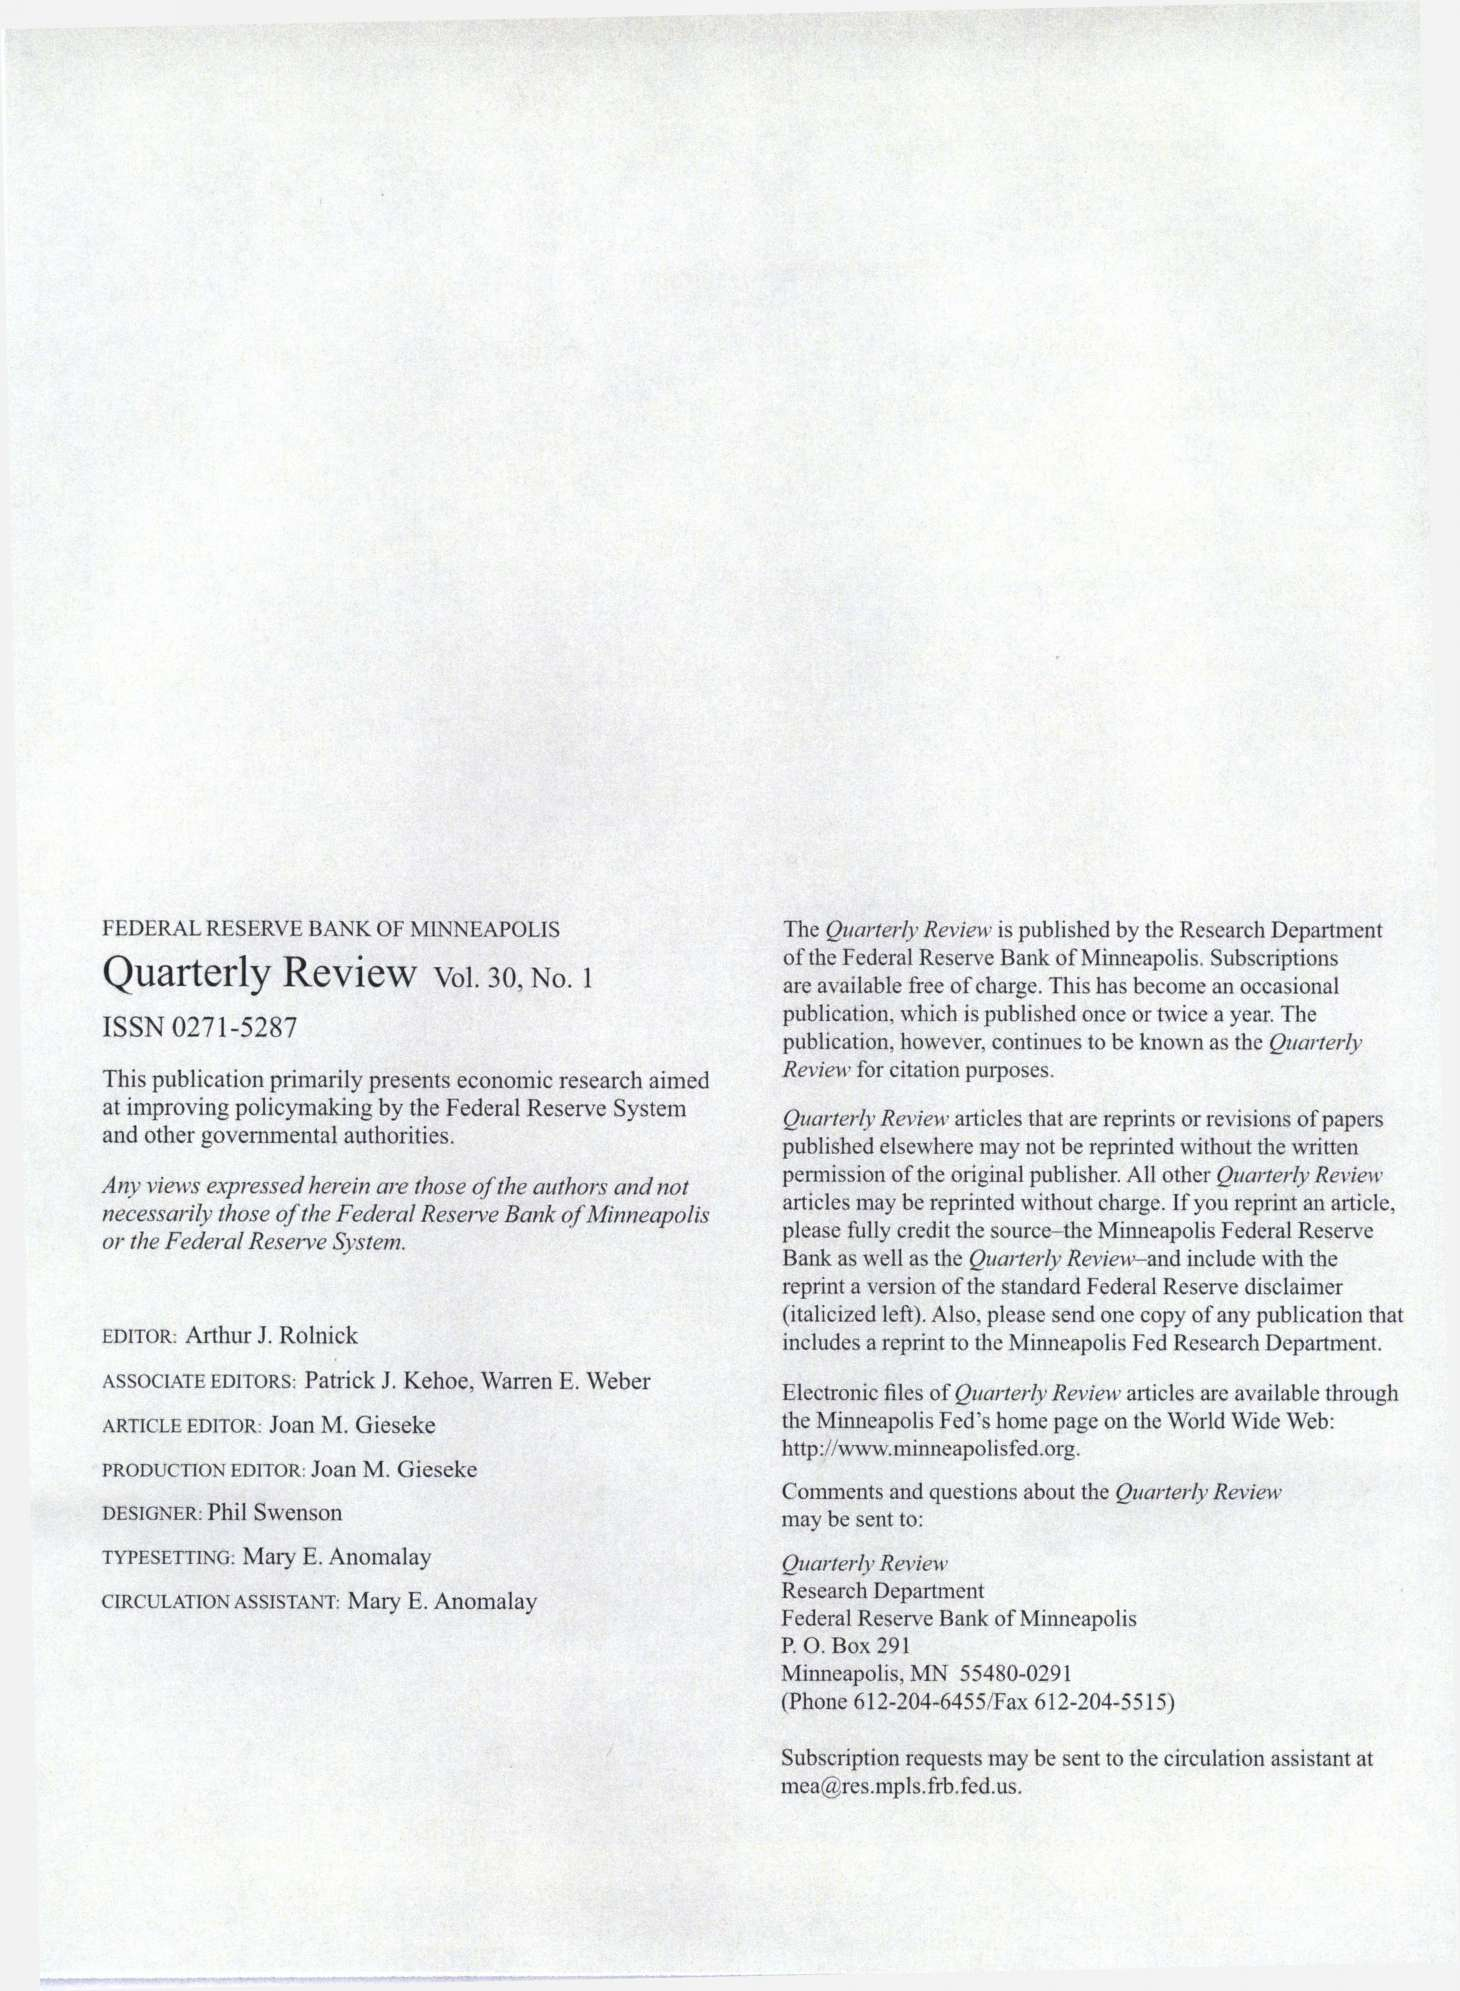 Quarterly Review vol., NO. ISSN - This publication primarily presents economic research aimed at improving policymaking by the Federal Reserve System and other governmental authorities.